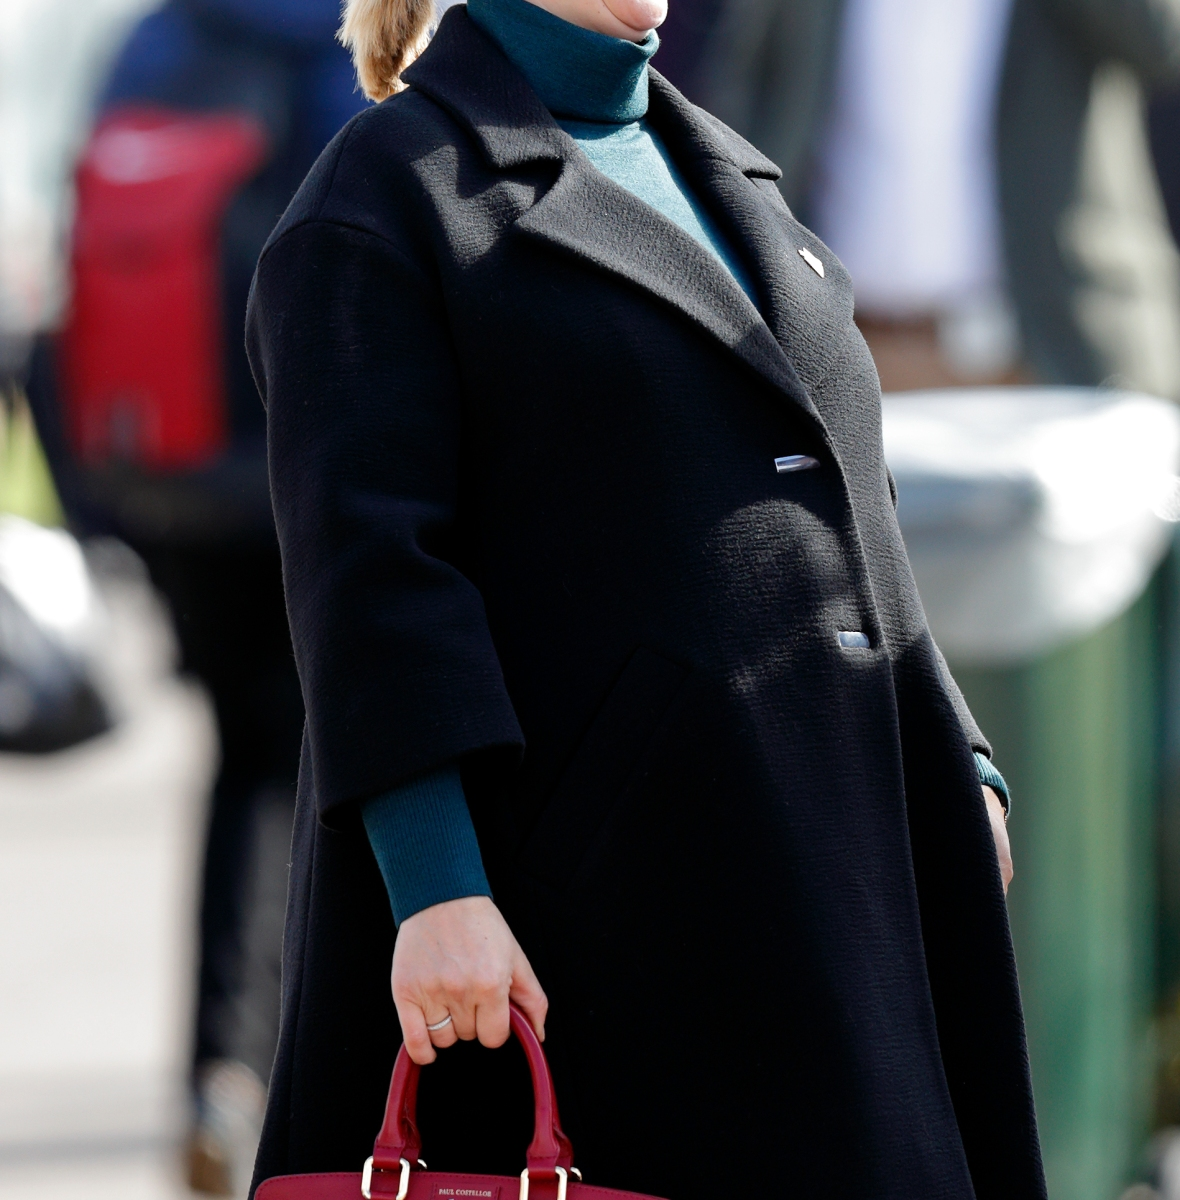 zara tindall getty images